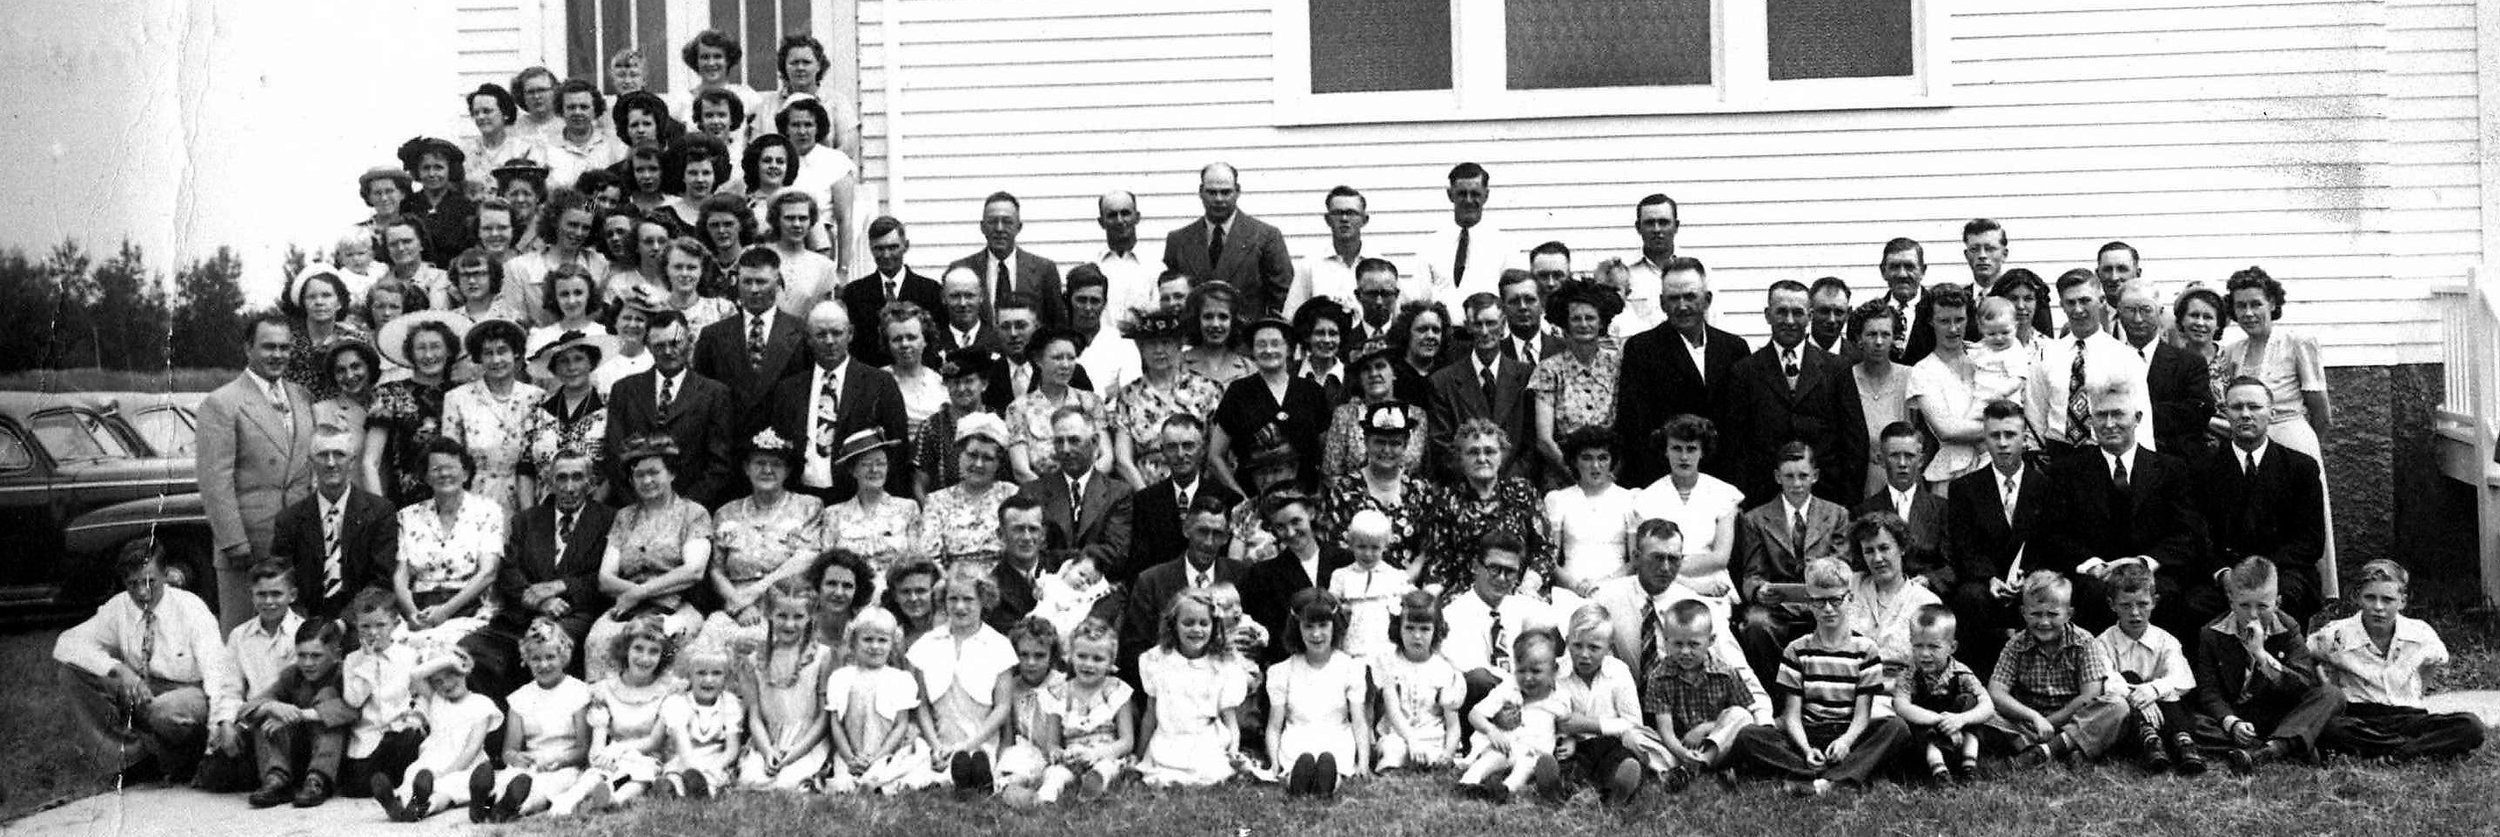 Kongsvinger Congregation 1949